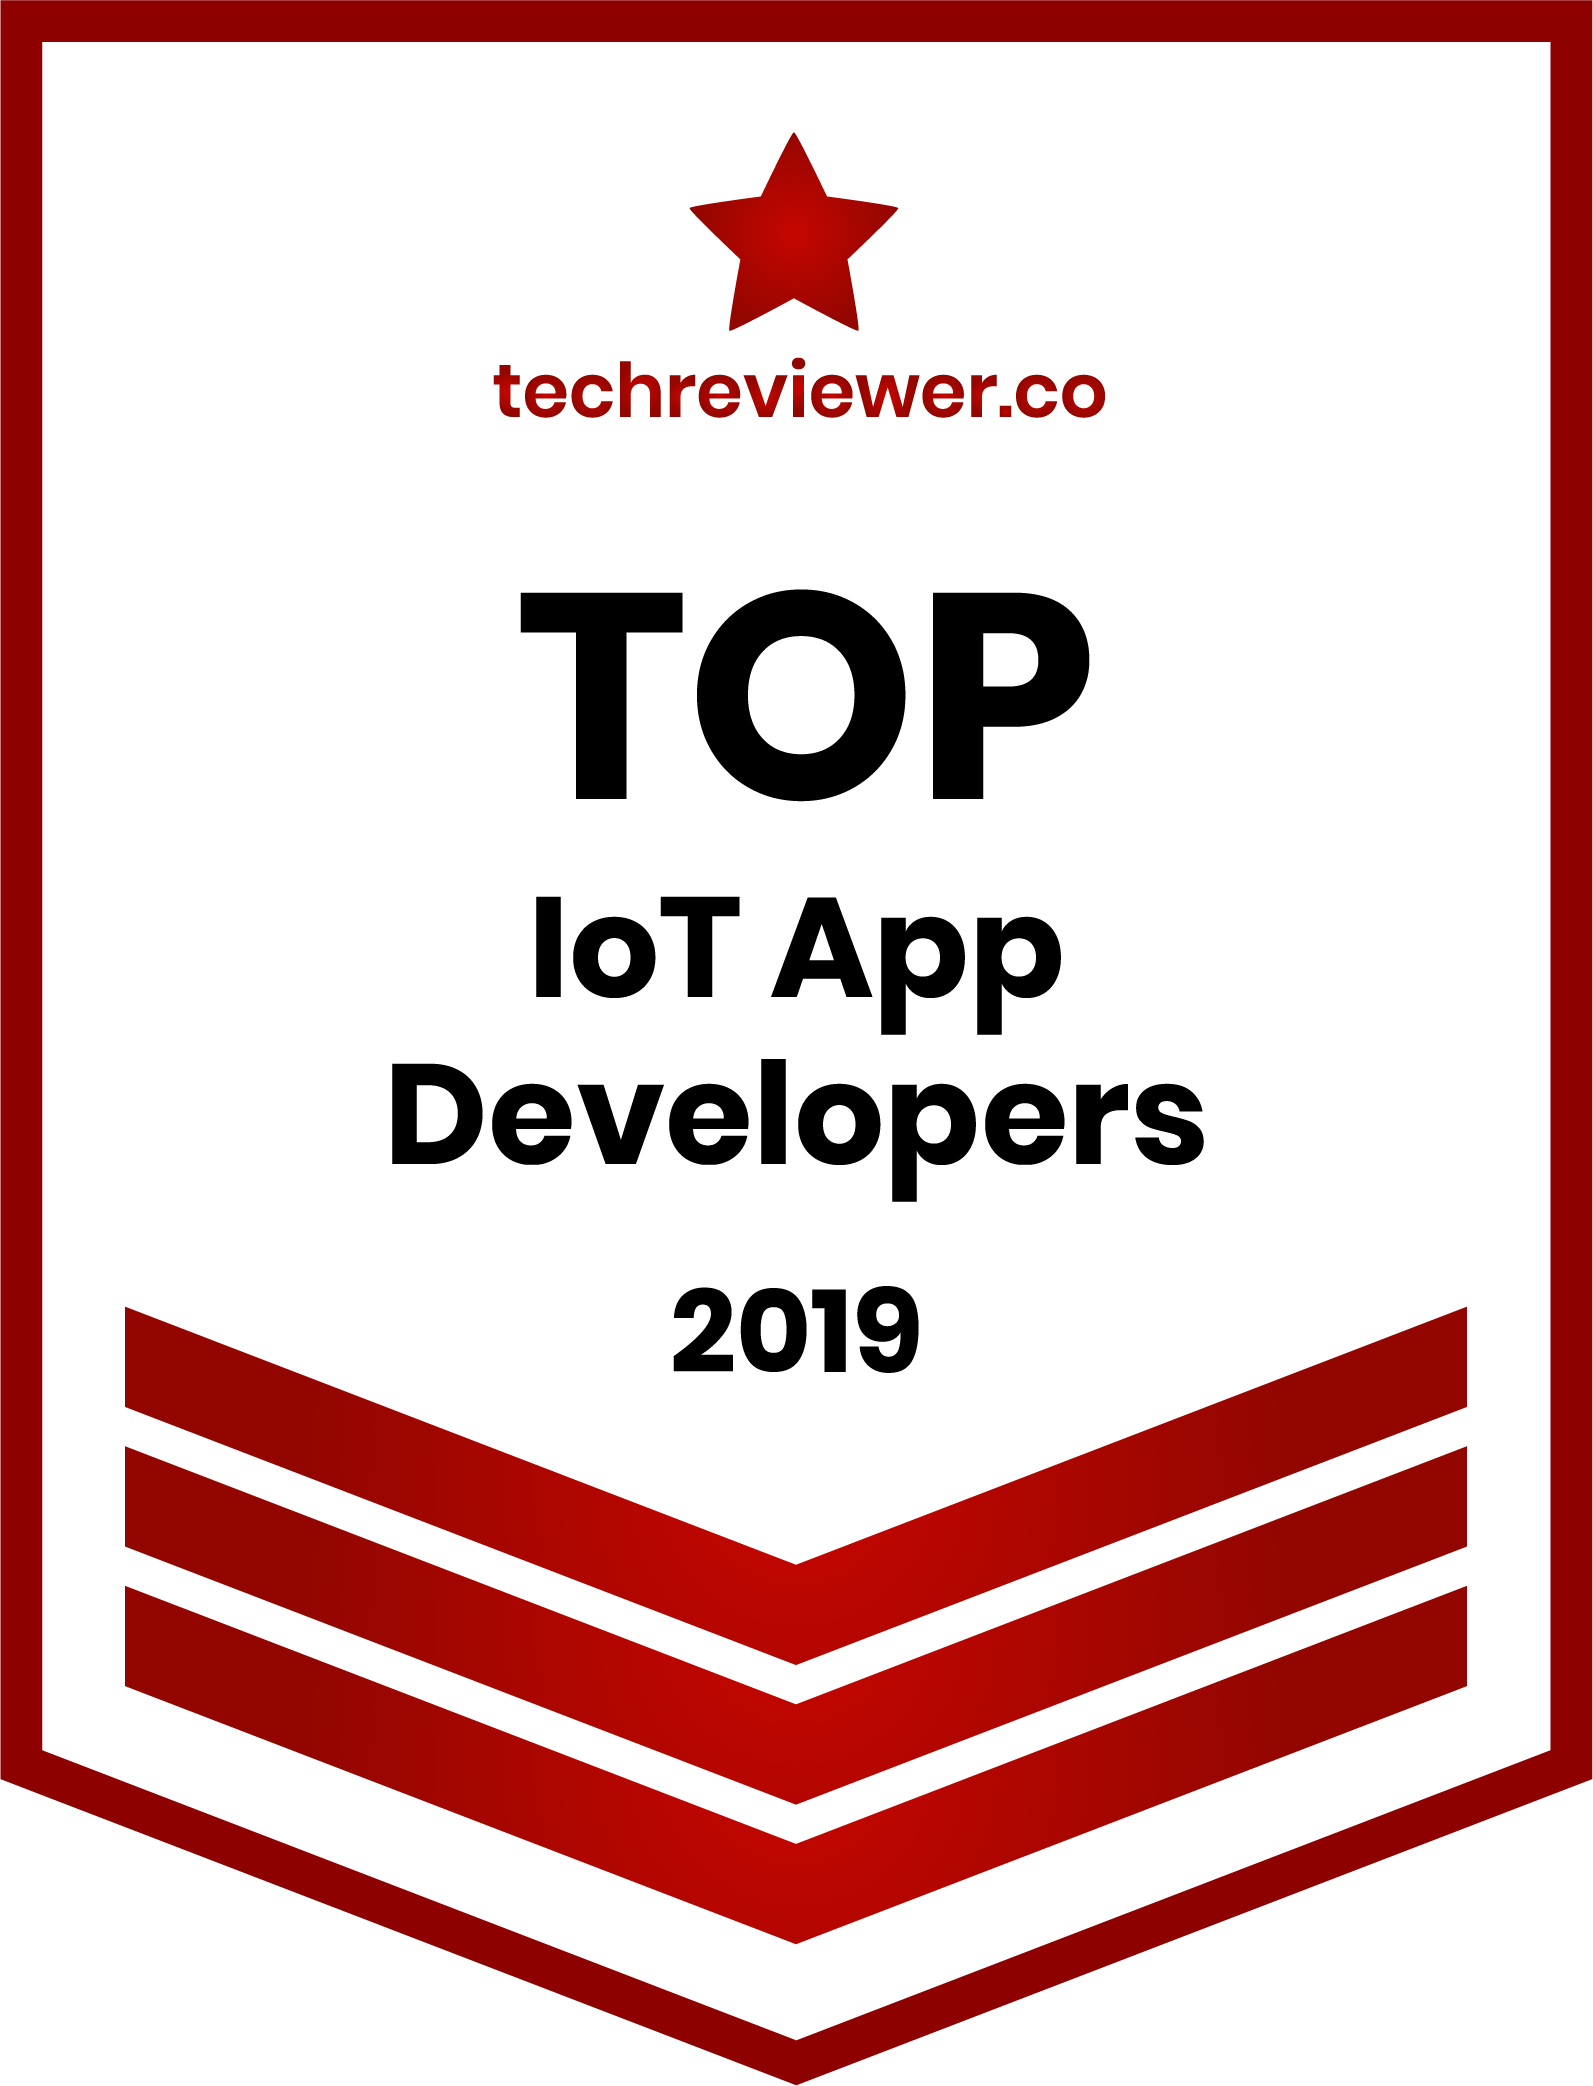 Techreviewer named Sirin Software top IoT App developers